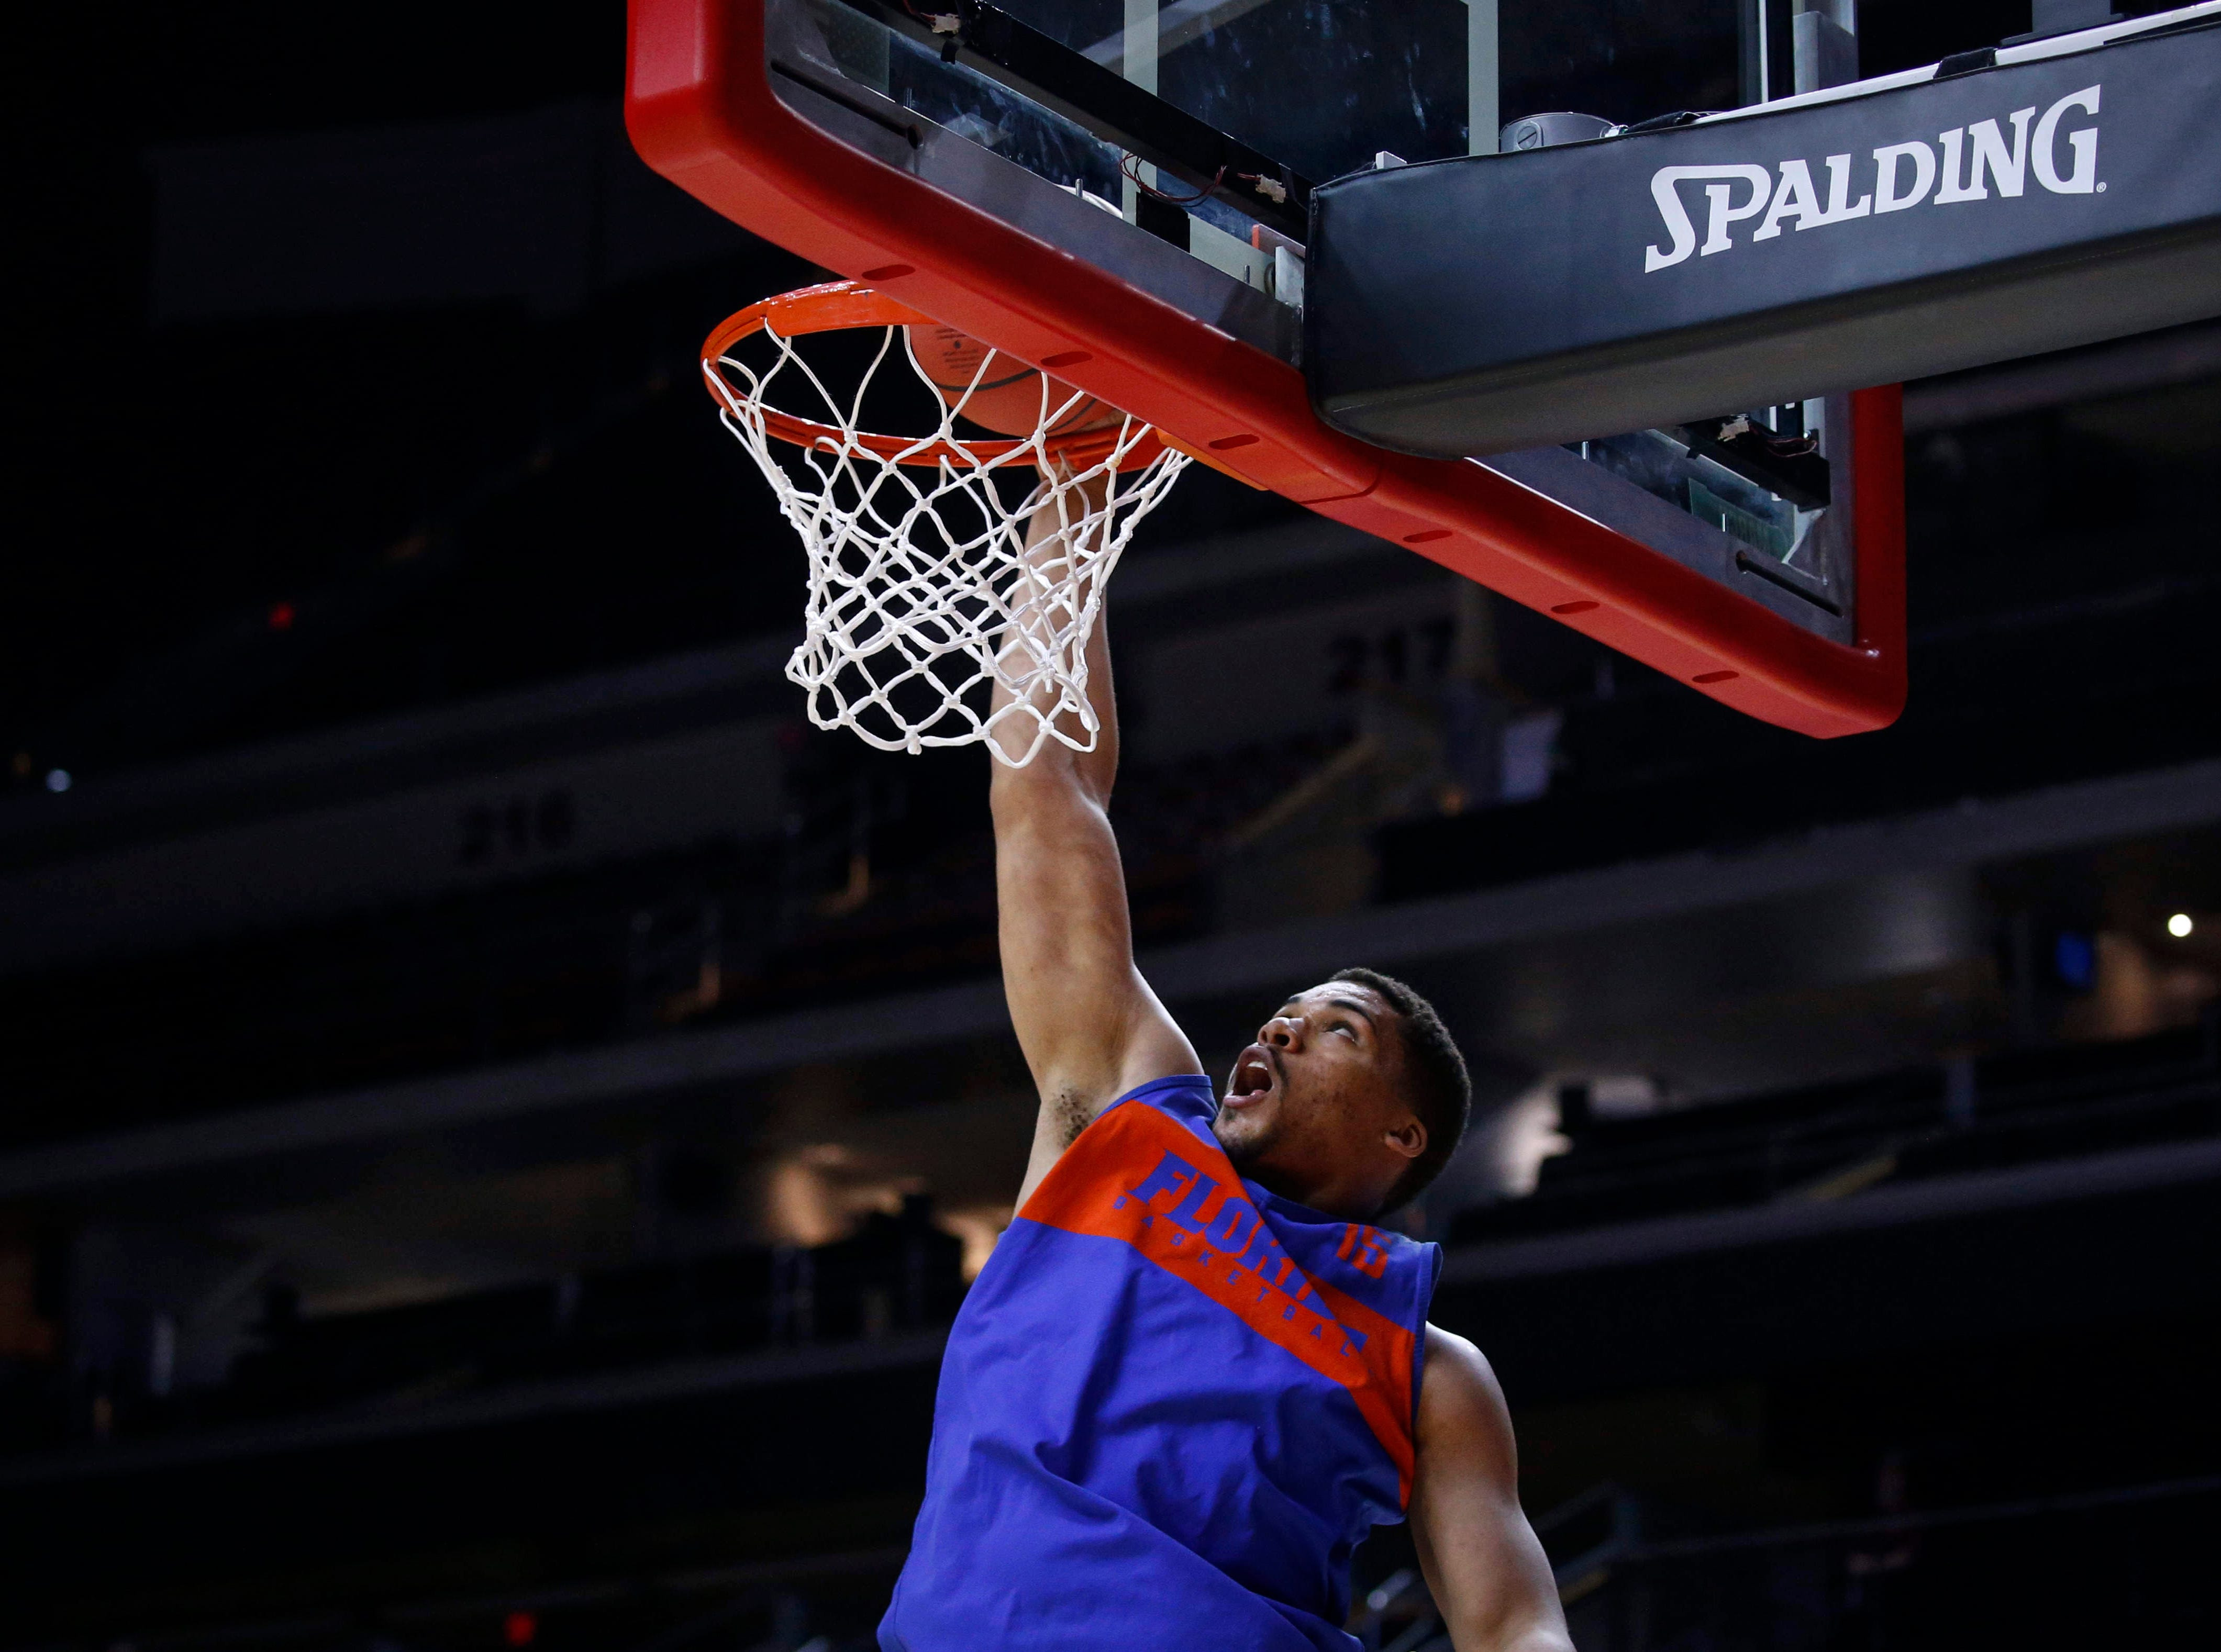 Florida freshman Isaiah Stokes dunks the ball during open practice on Wednesday, March 20, 2019, at Wells Fargo Arena in Des Moines, Iowa.